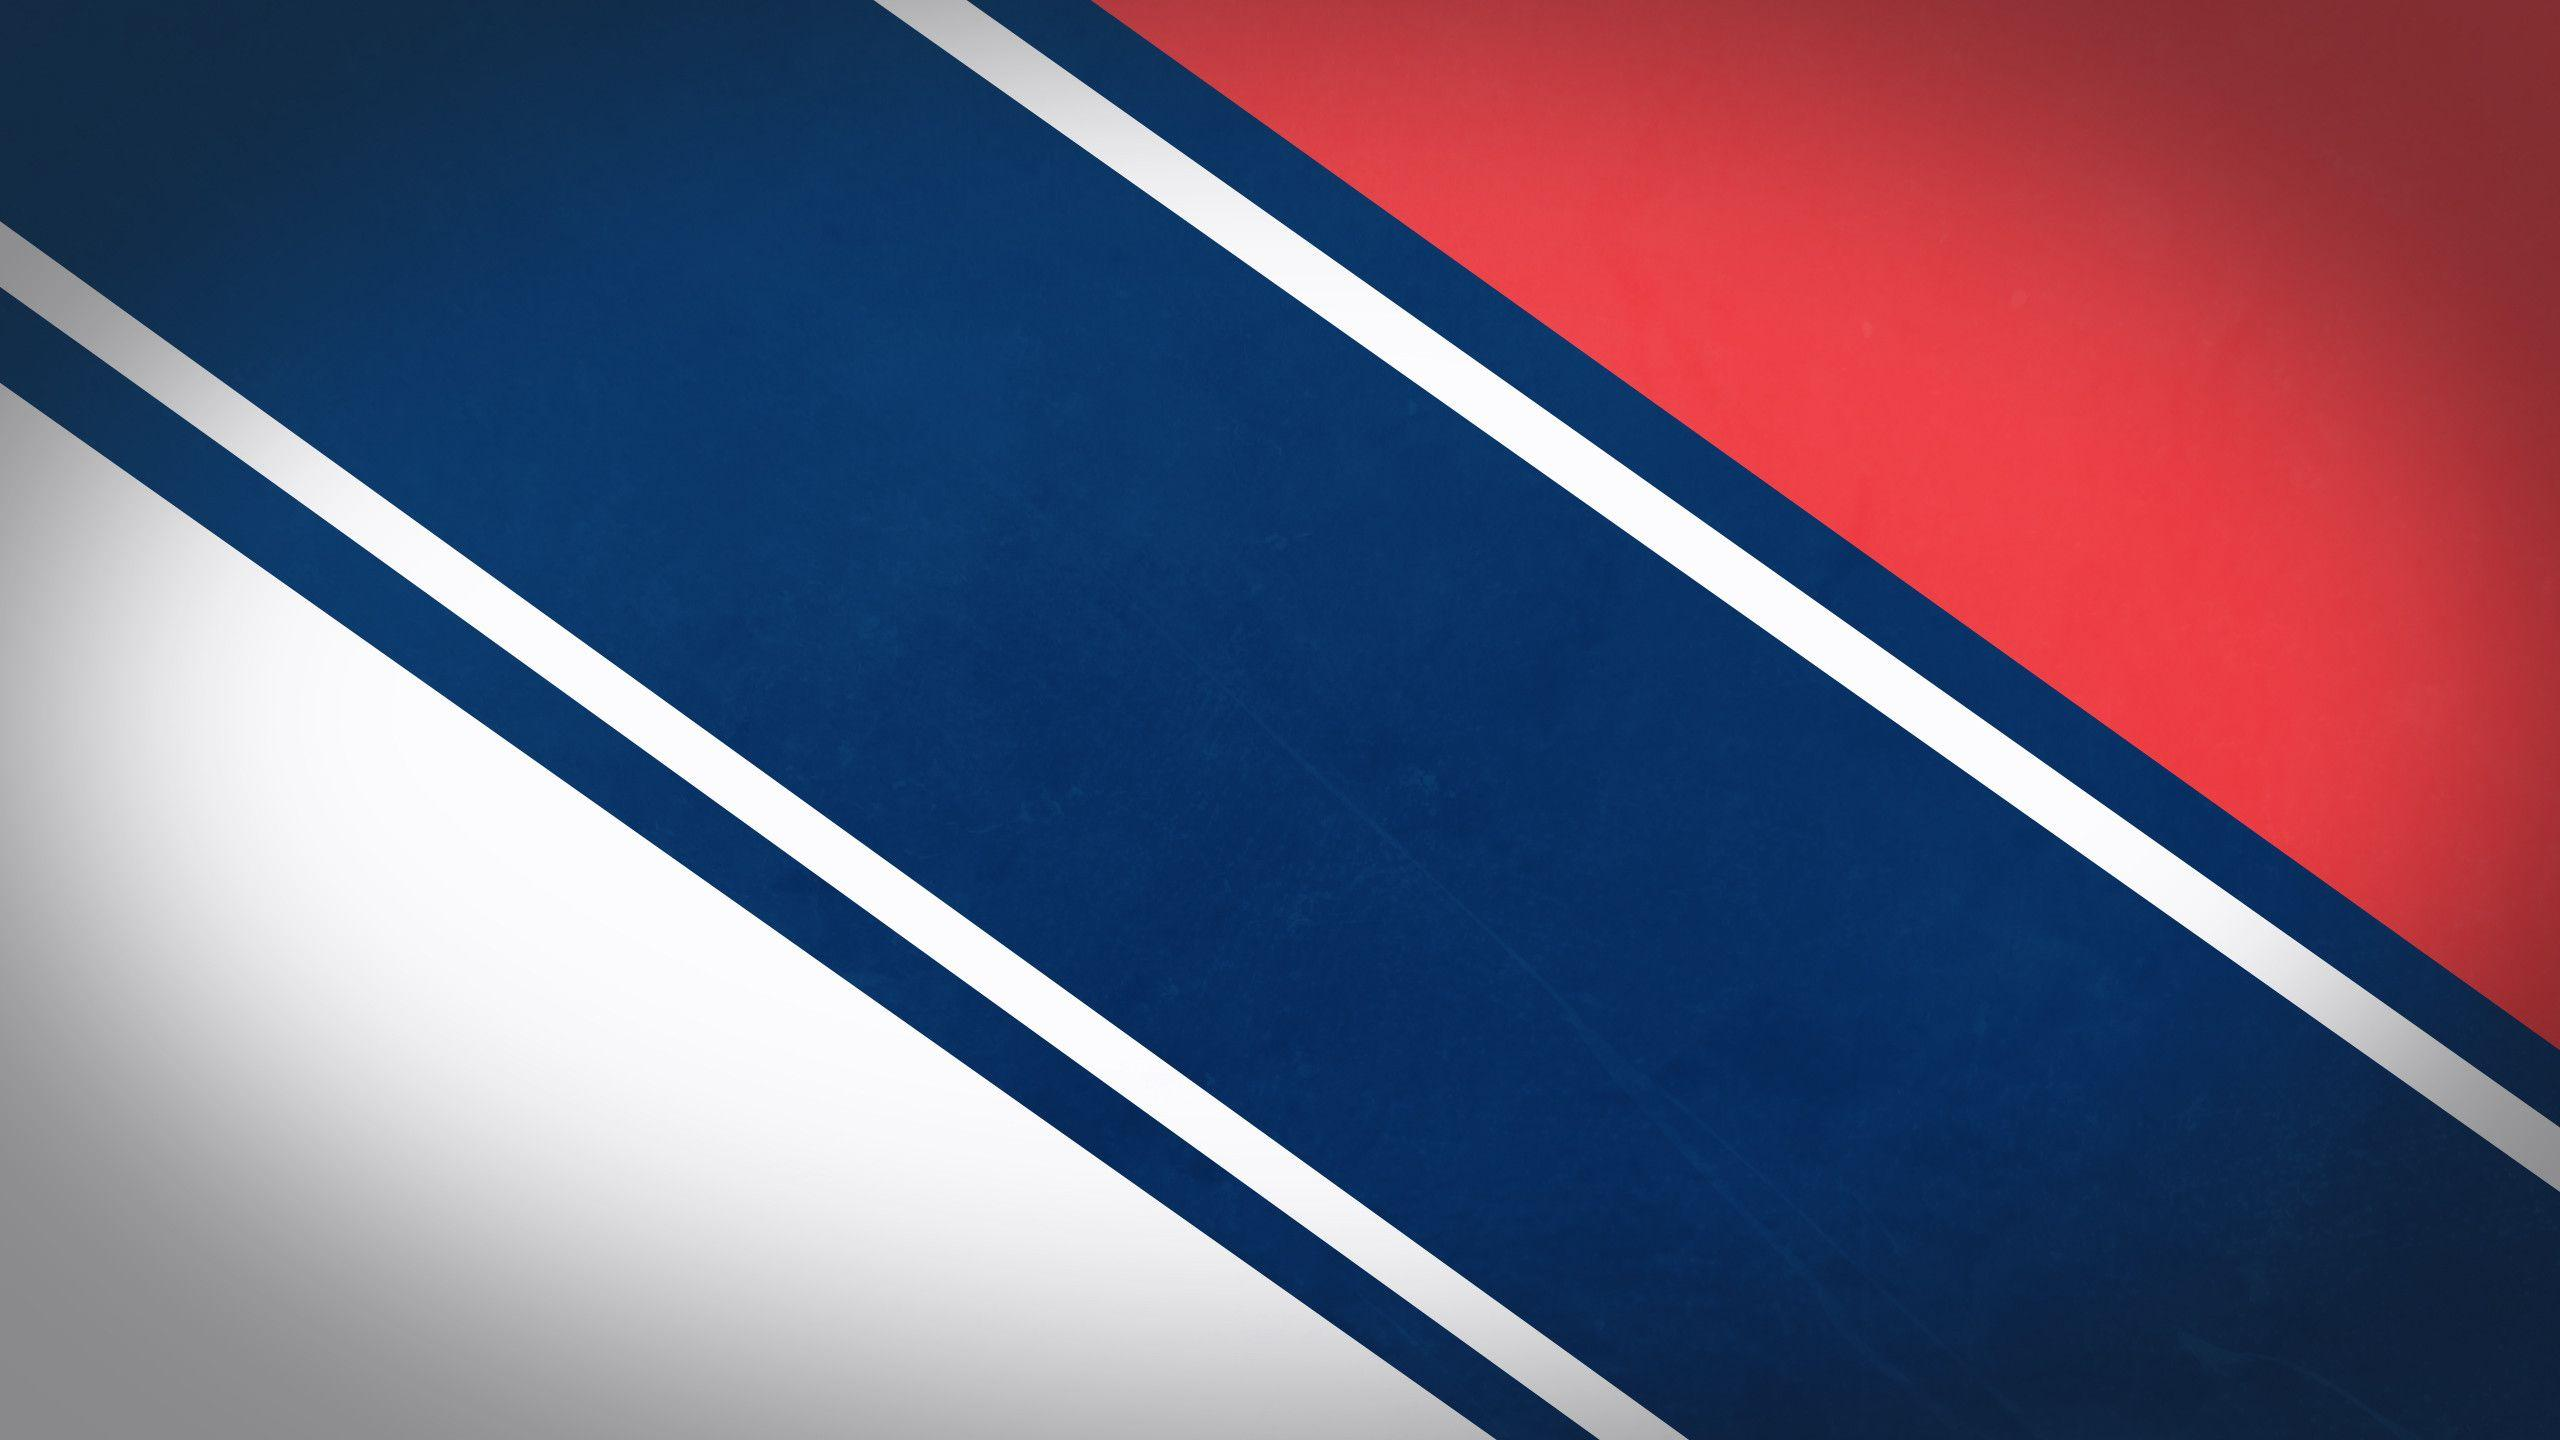 Rangers Wallpapers - Page 27 - HFBoards